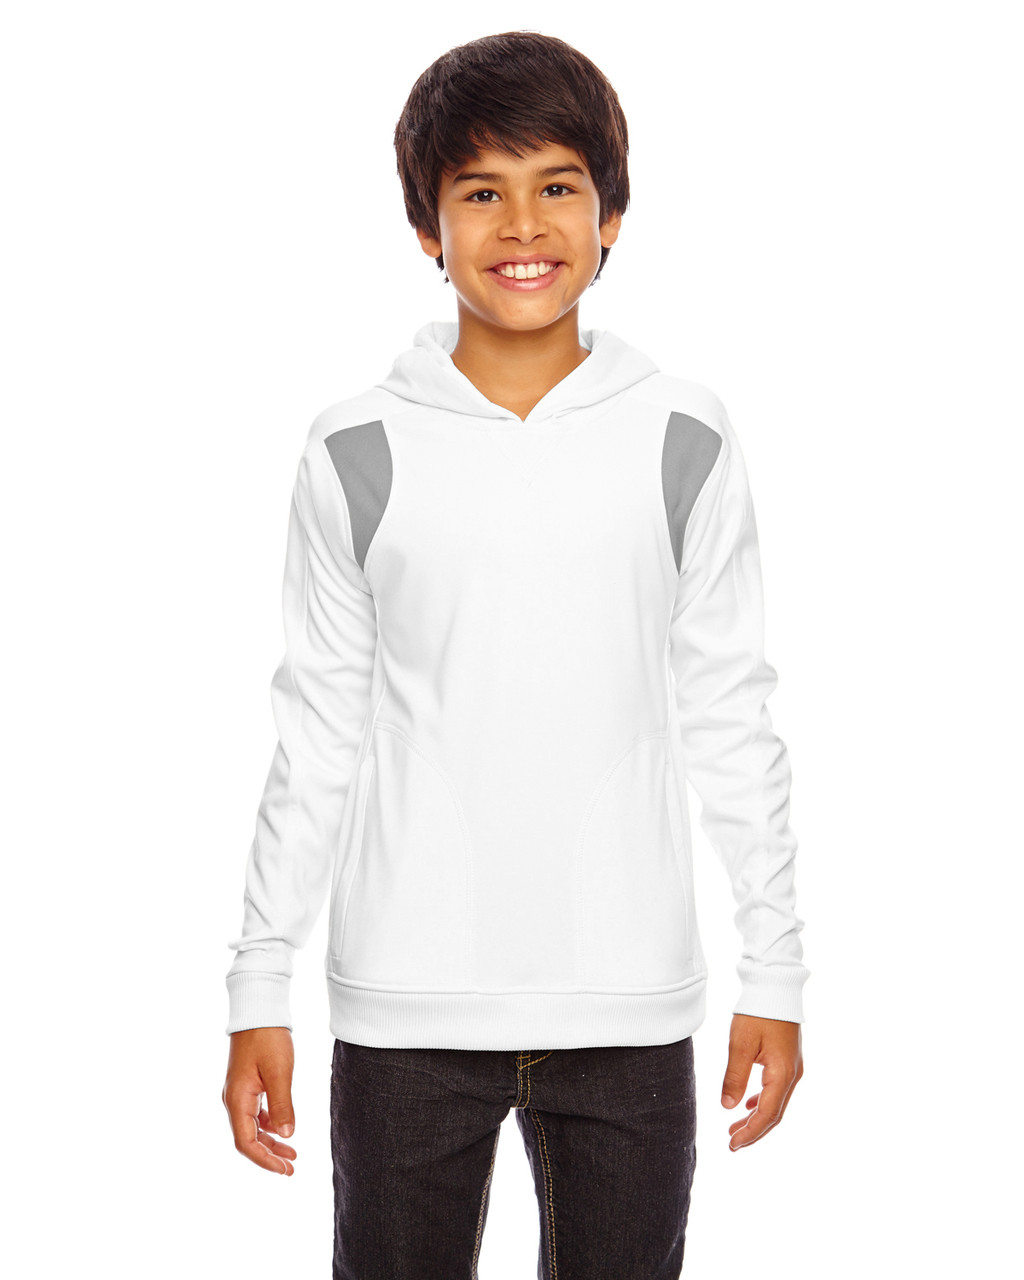 White/Graphite - TT30Y Team 365 Youth Elite Performance Hoodie | BlankClothing.ca